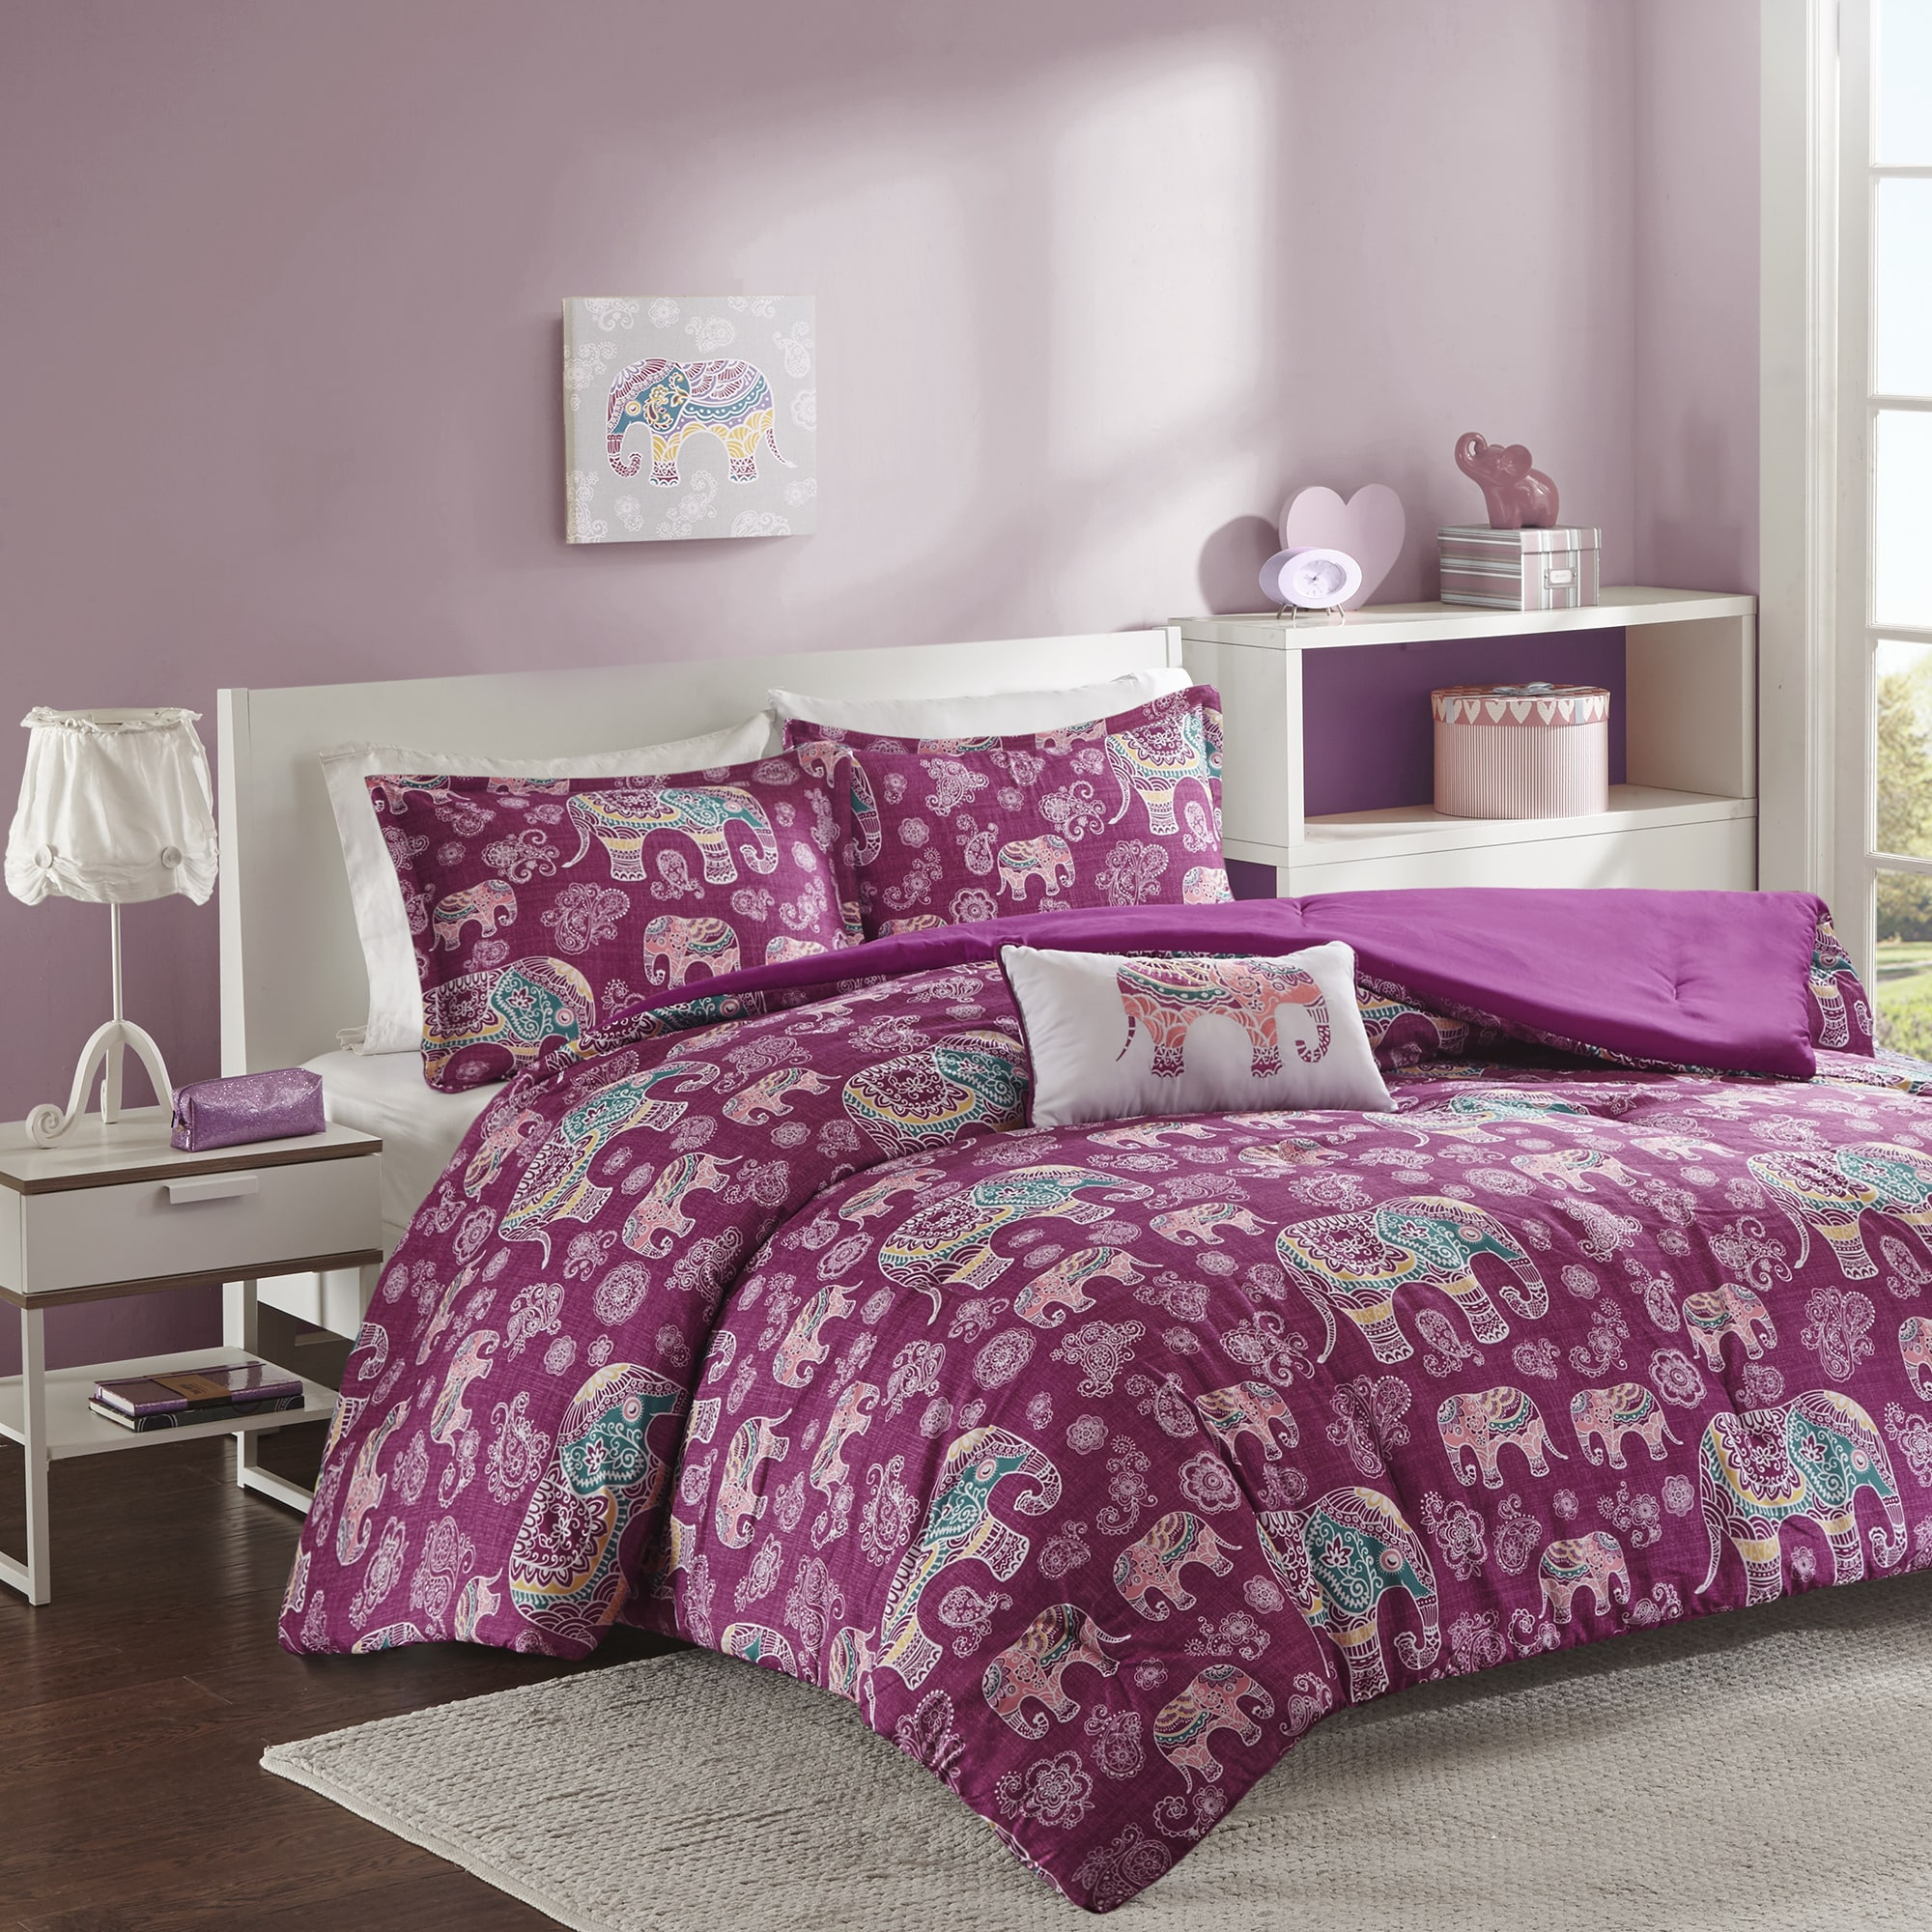 black com walmart print a in white aztec bag tribal coordinating bedding comforter set ip mainstays bed and